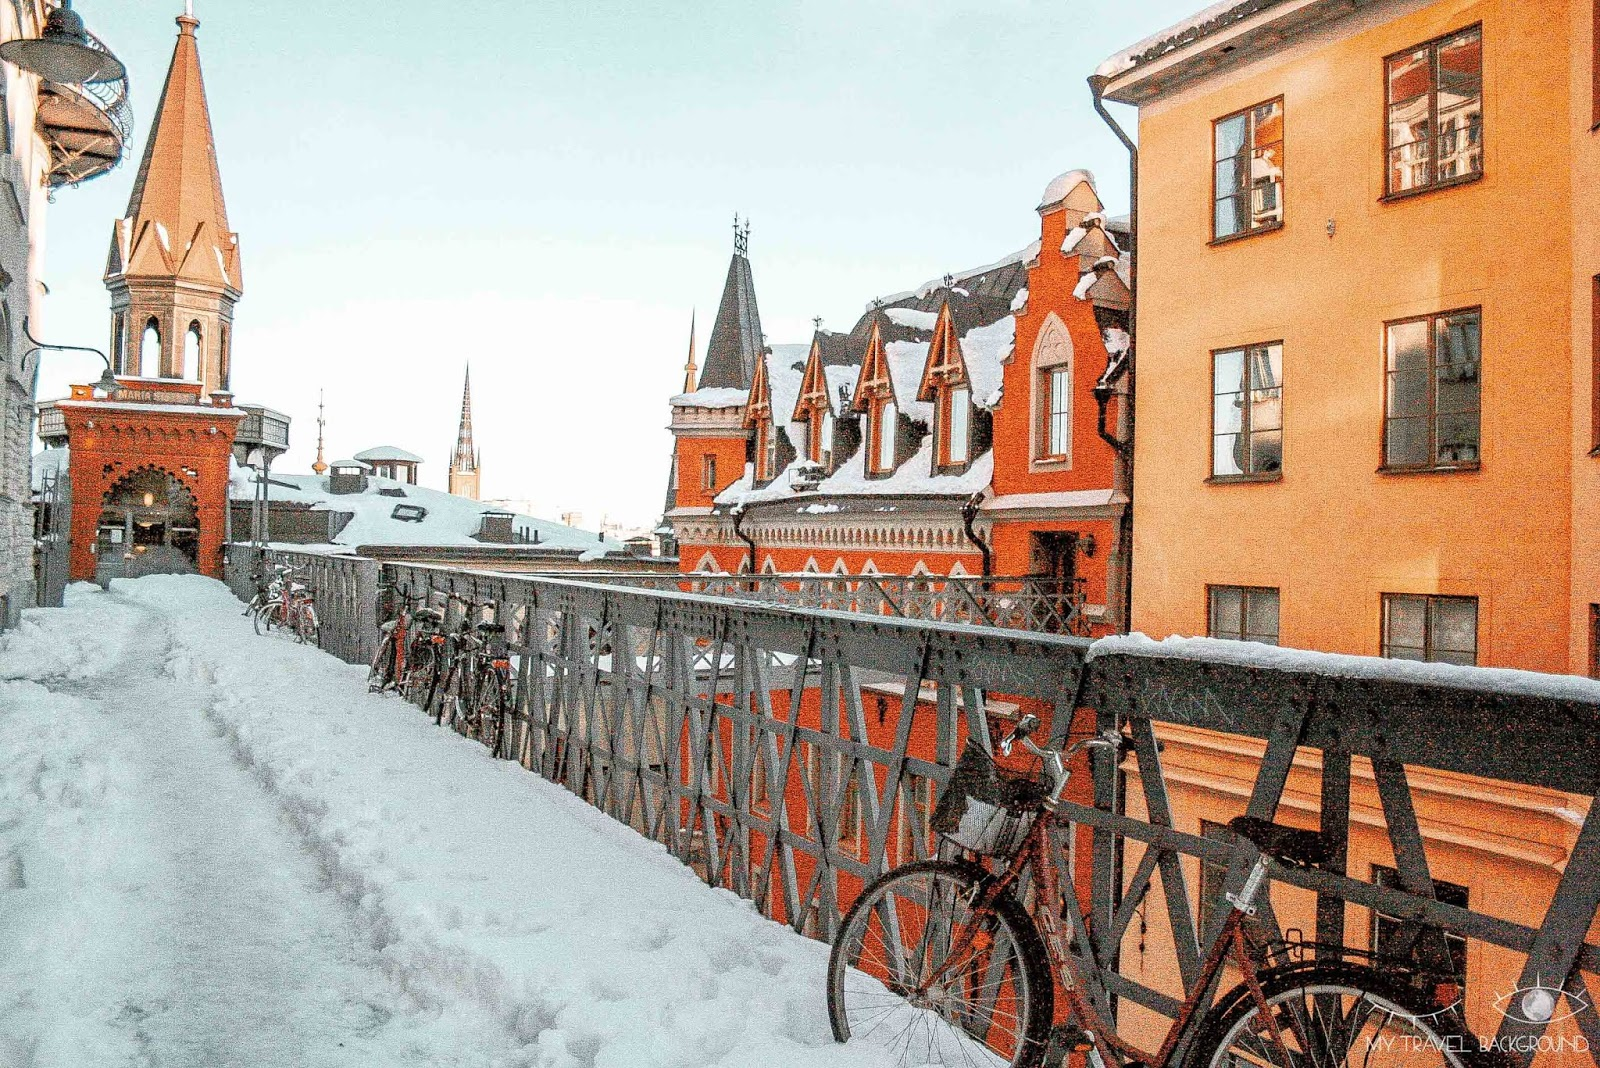 My Travel Background : Visiter Stockholm, mes immanquables - Sodermalm